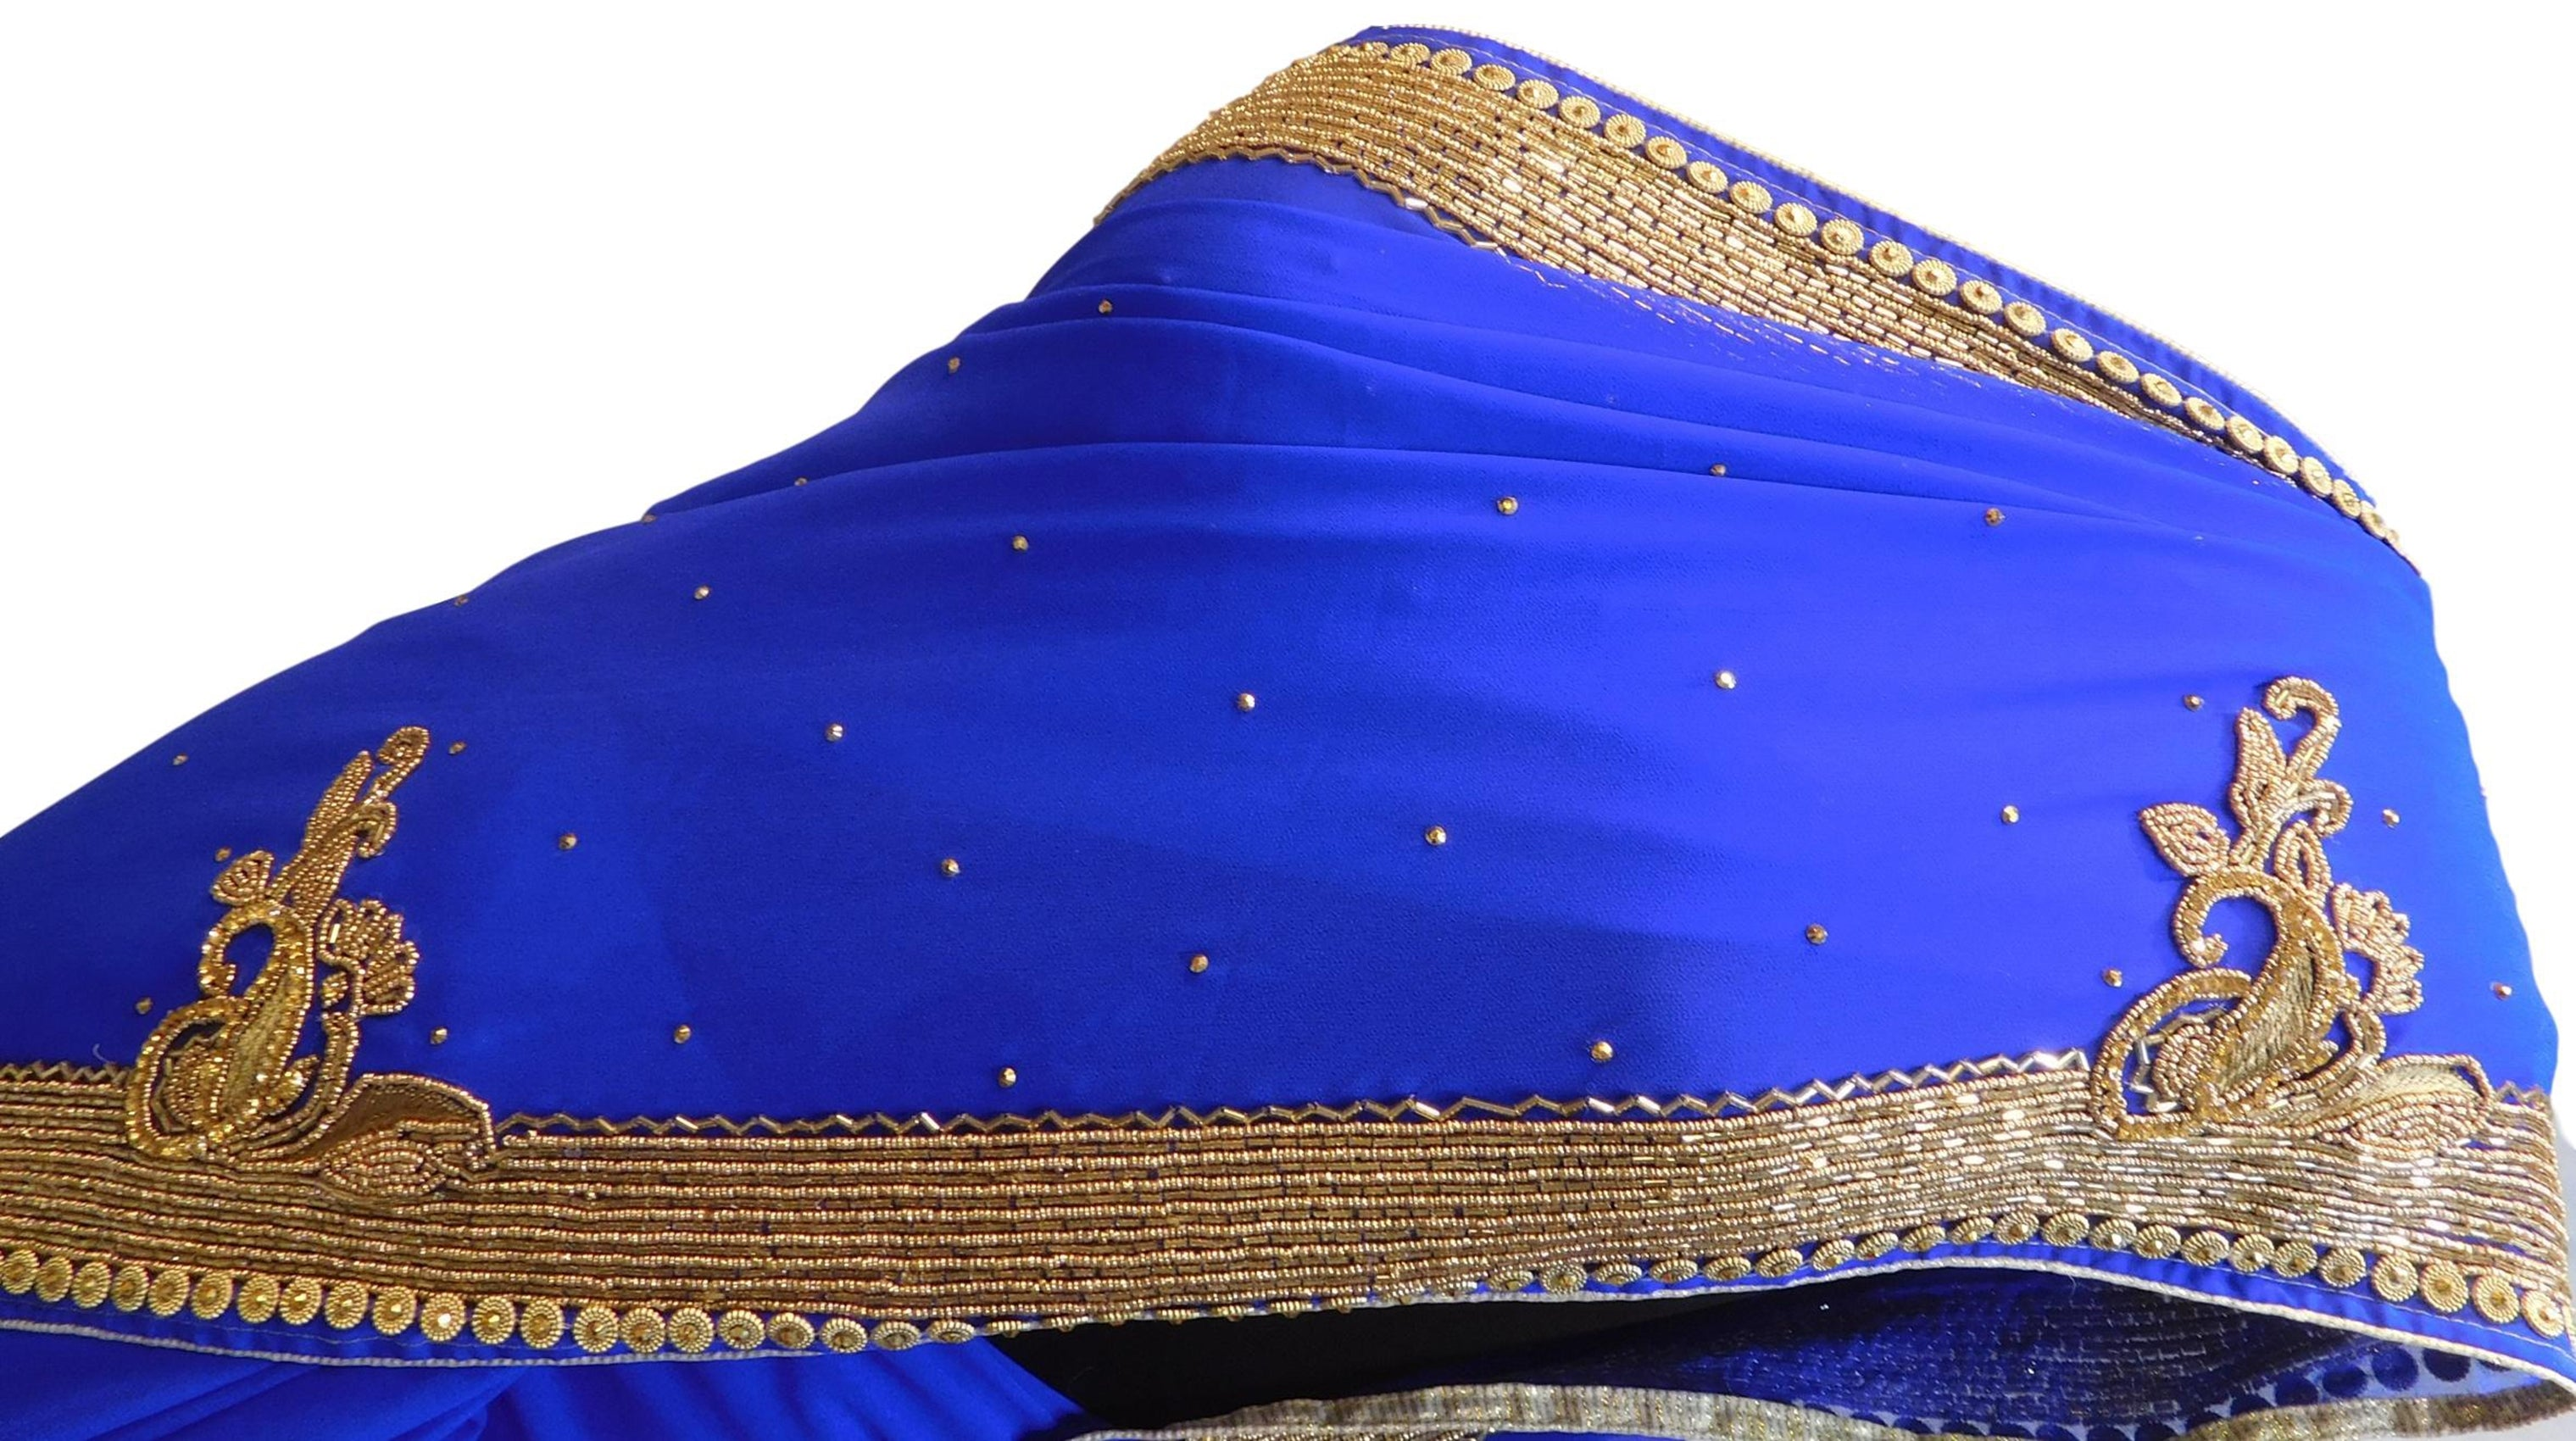 Blue Designer Wedding Partywear Georgette Thread Cutdana Beads Stone Hand Embroidery Work Bridal Saree Sari E069